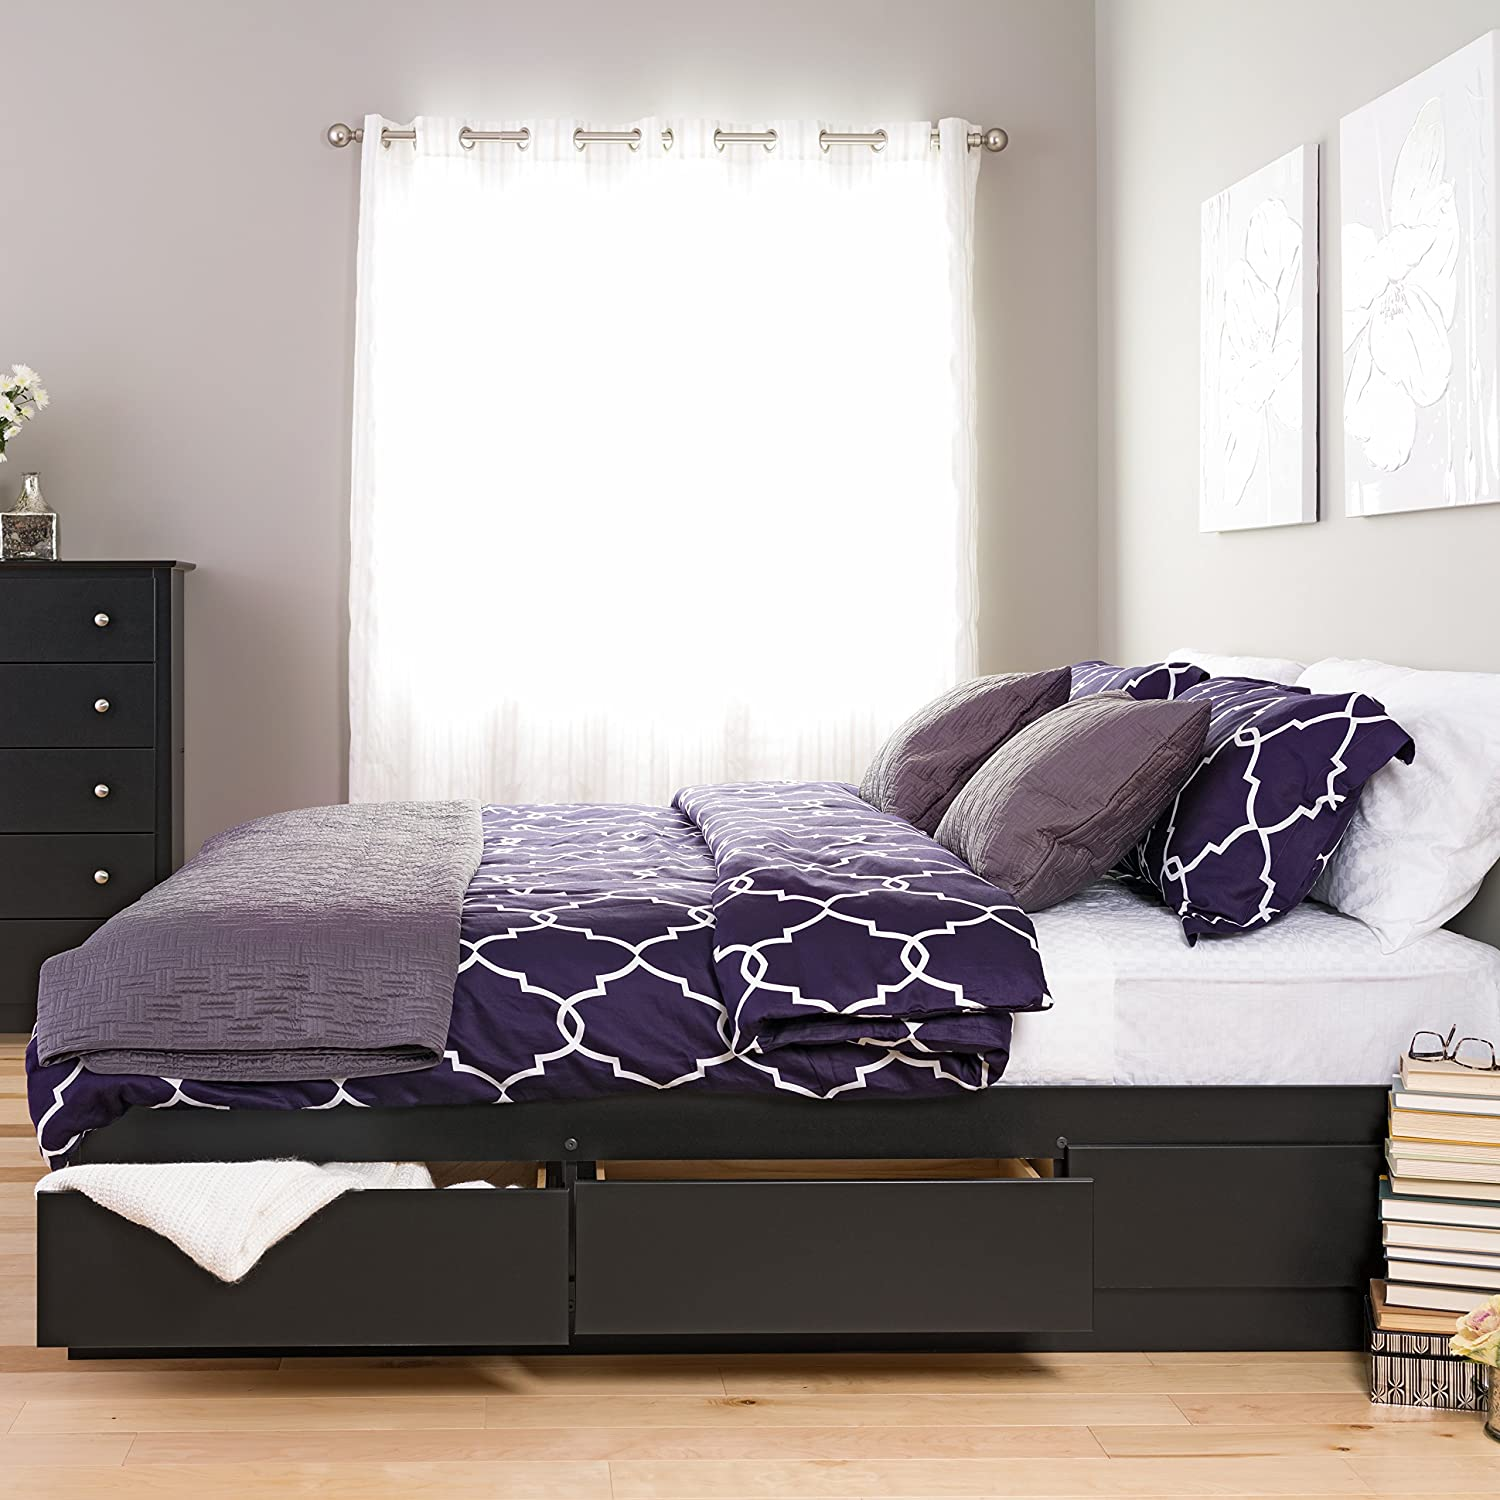 king drawer platform one drawers designs within with nightstands design size plans bed thousand